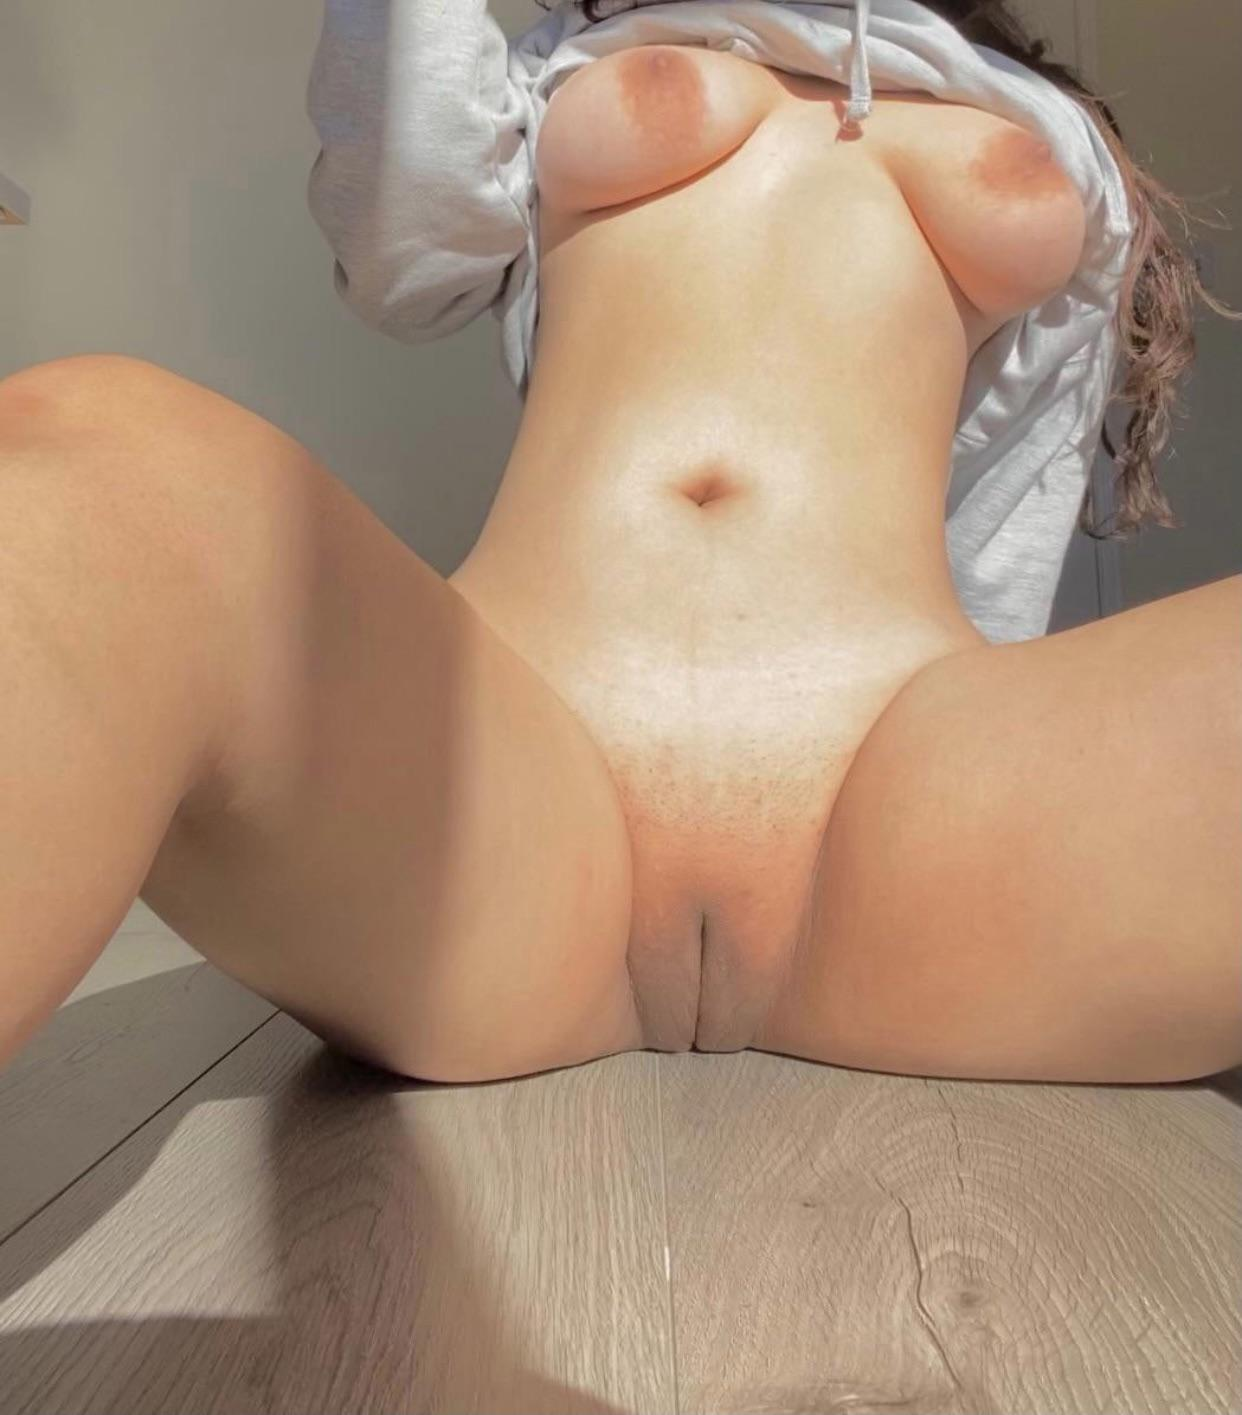 who wants juicy & japanese pussy?